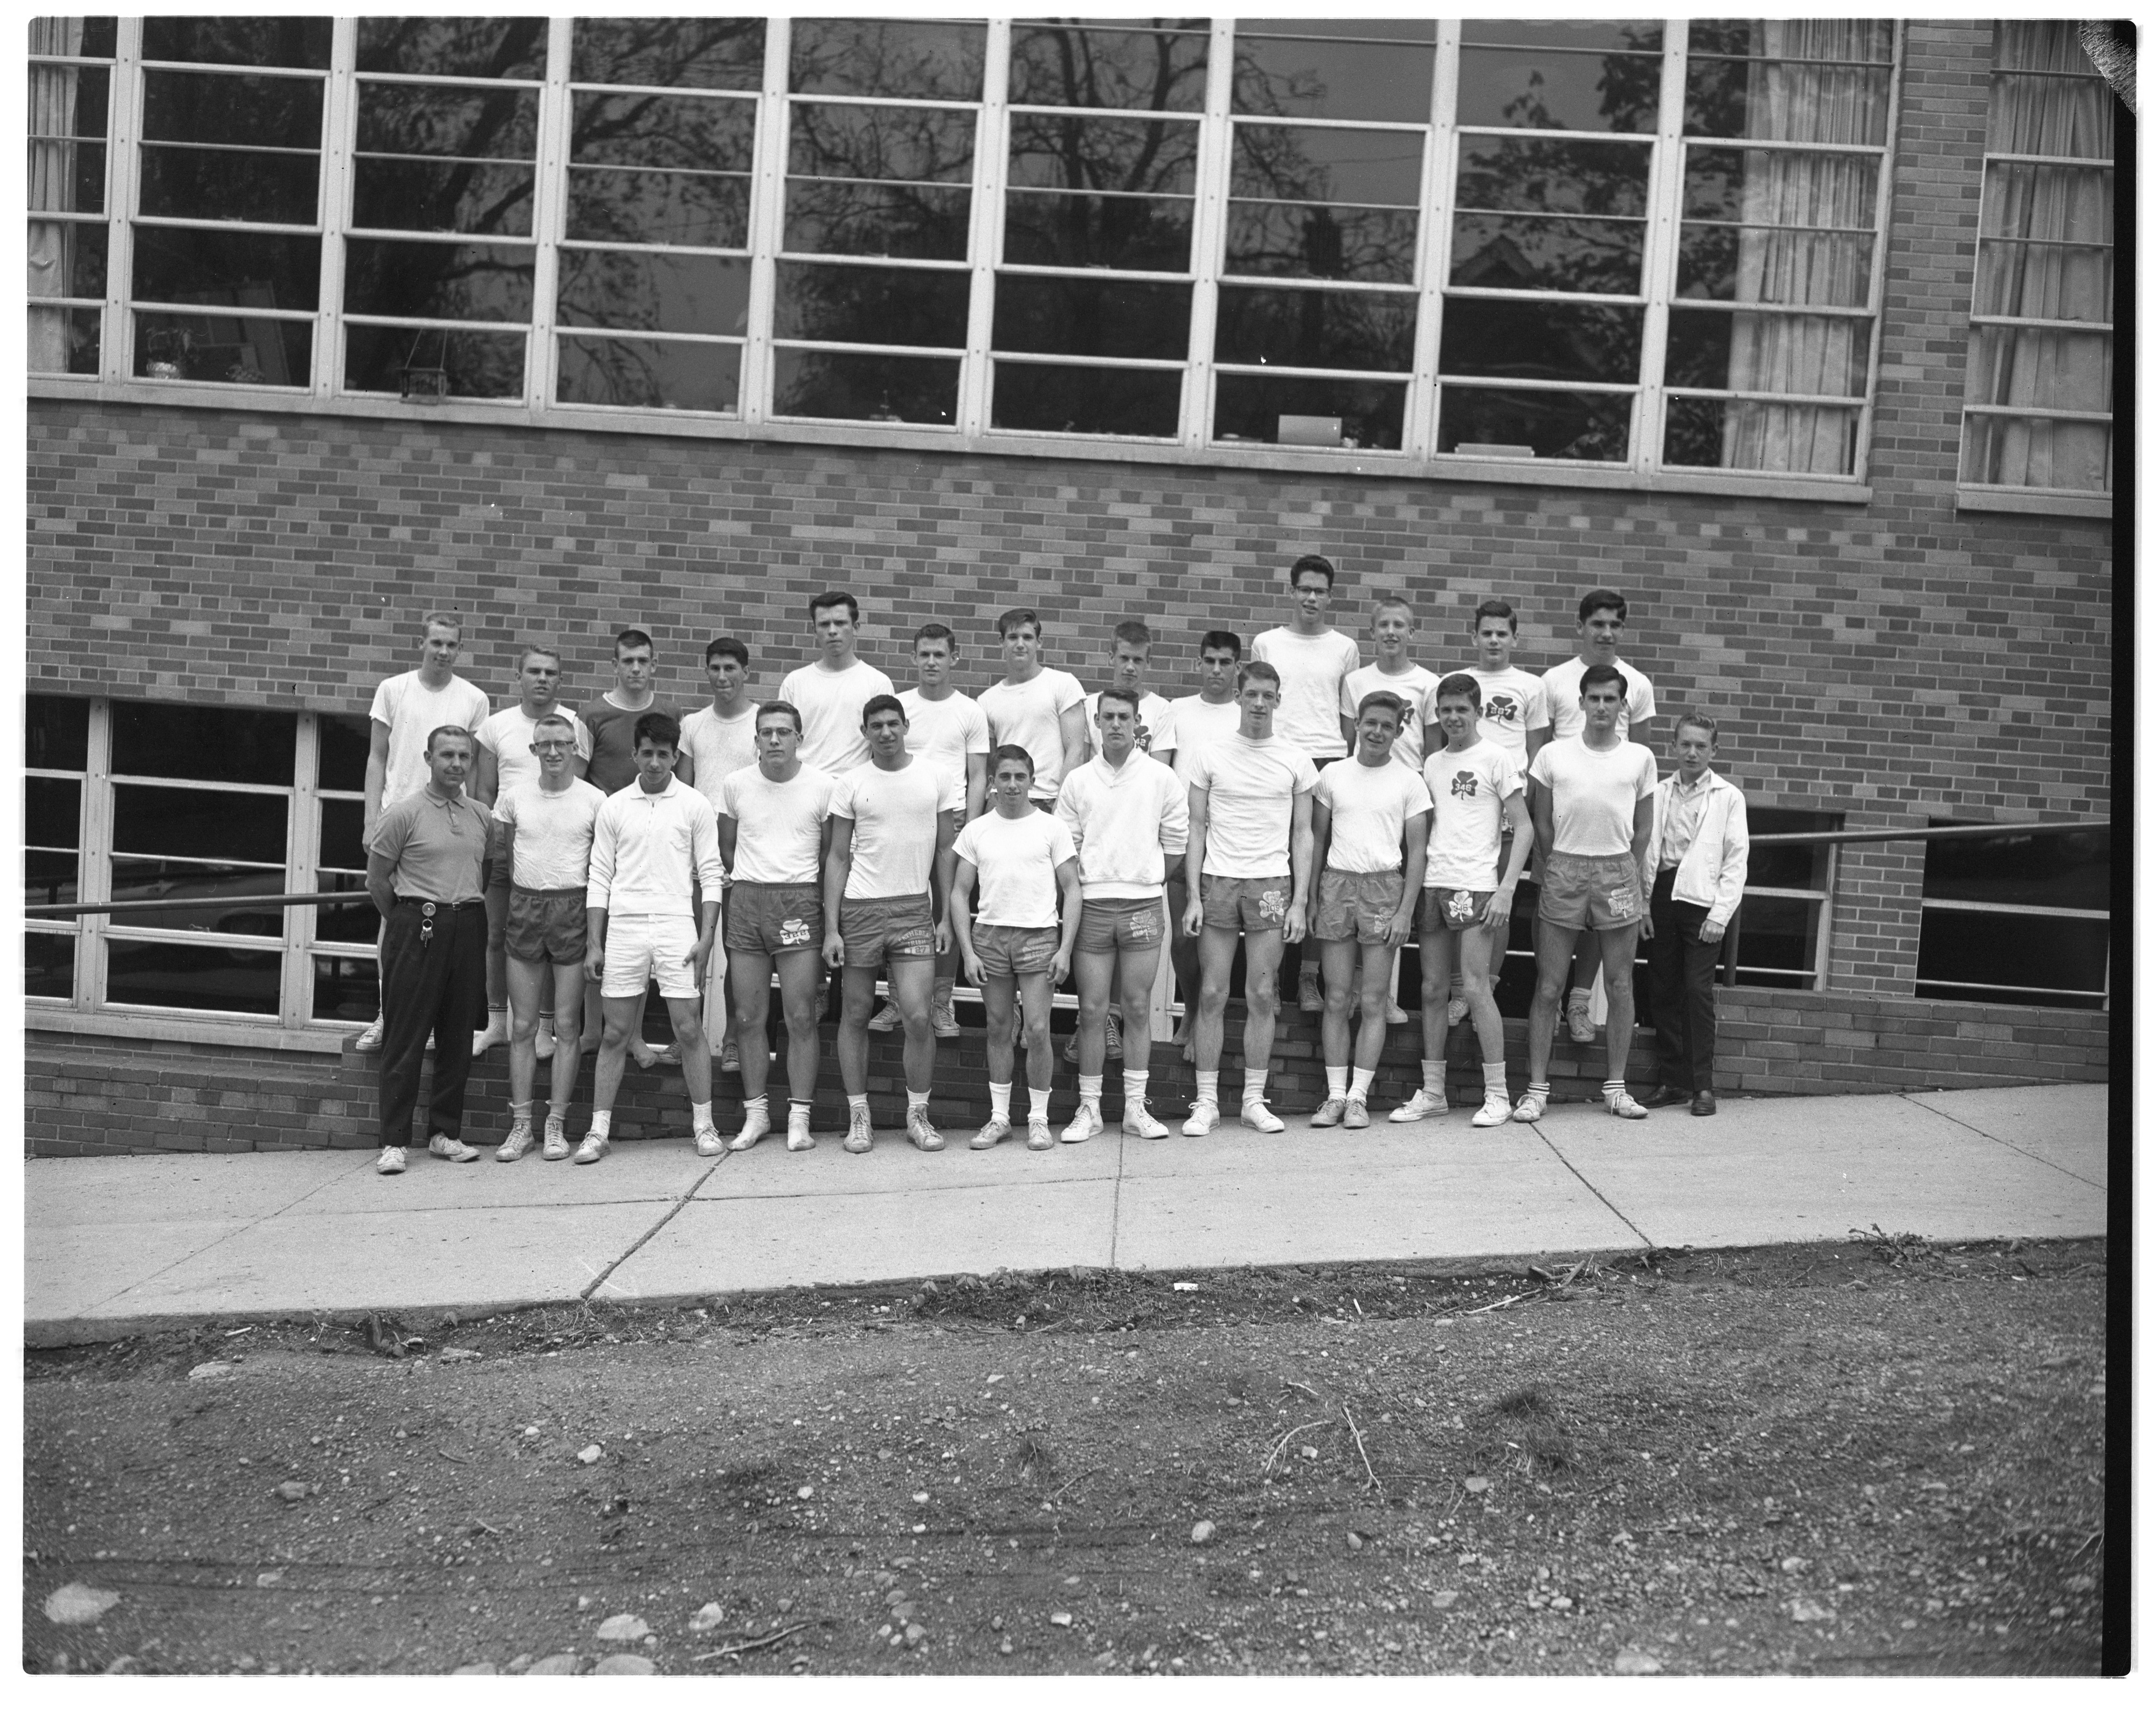 St. Thomas High School Champion Track Team, May 1963 image